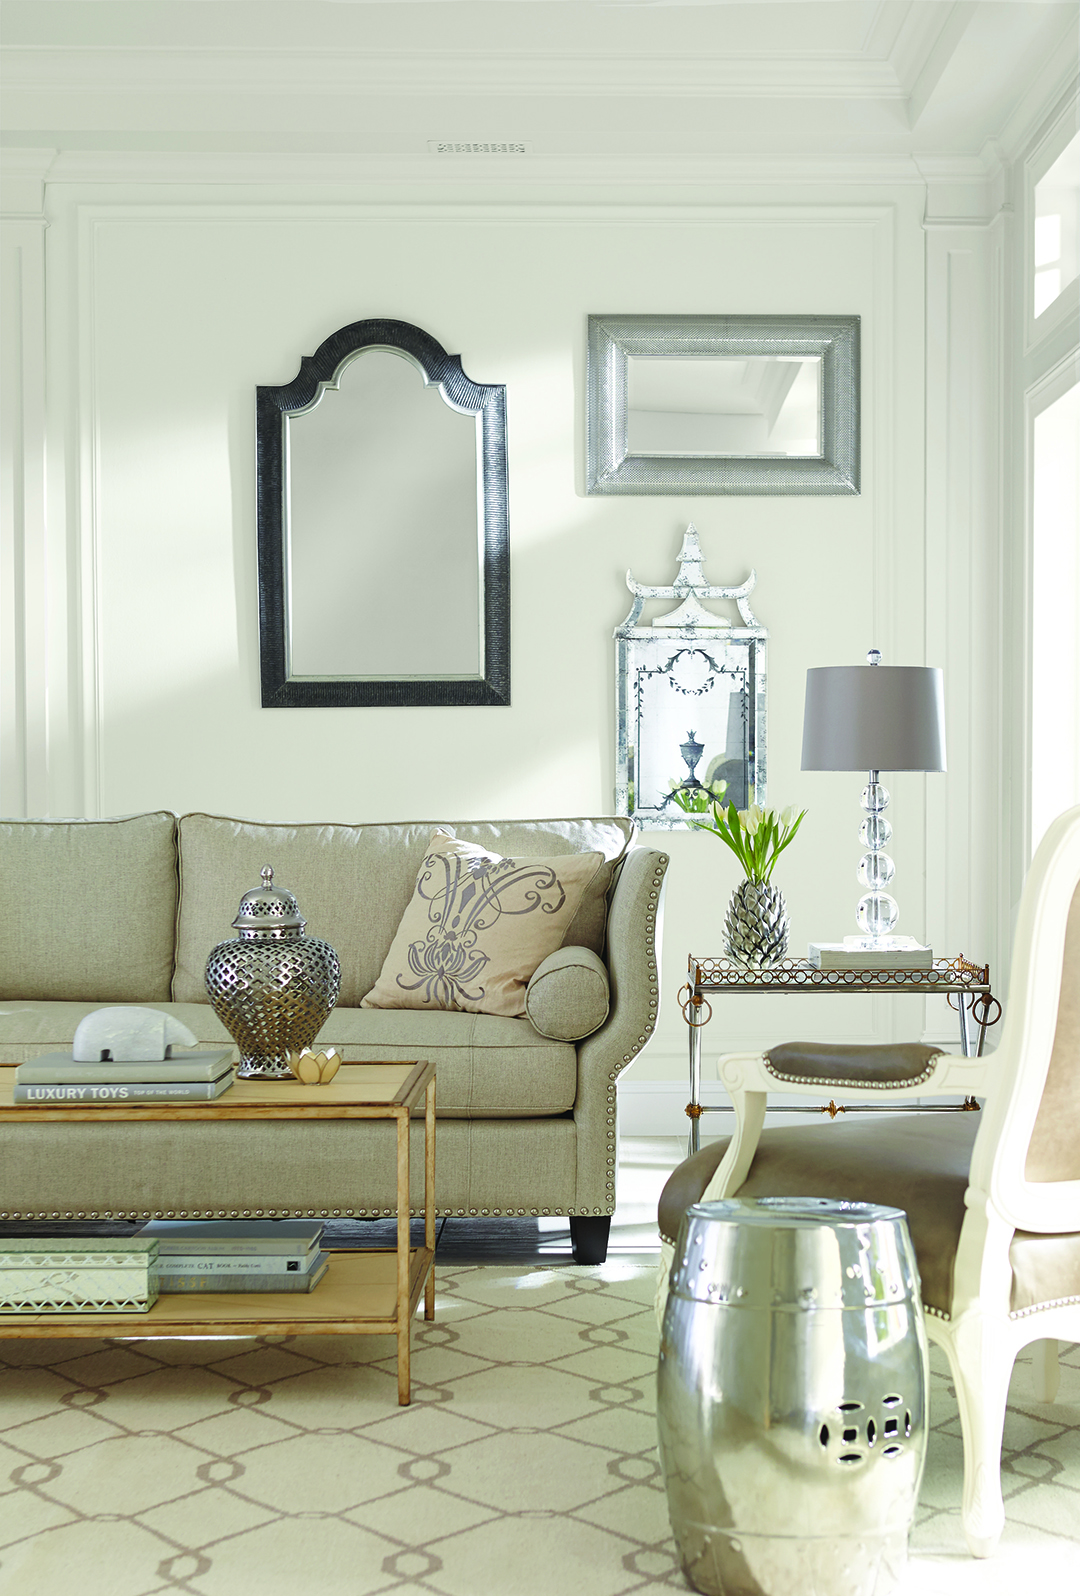 Top 10 Gray Paint Colors Recommended By Design Experts Better